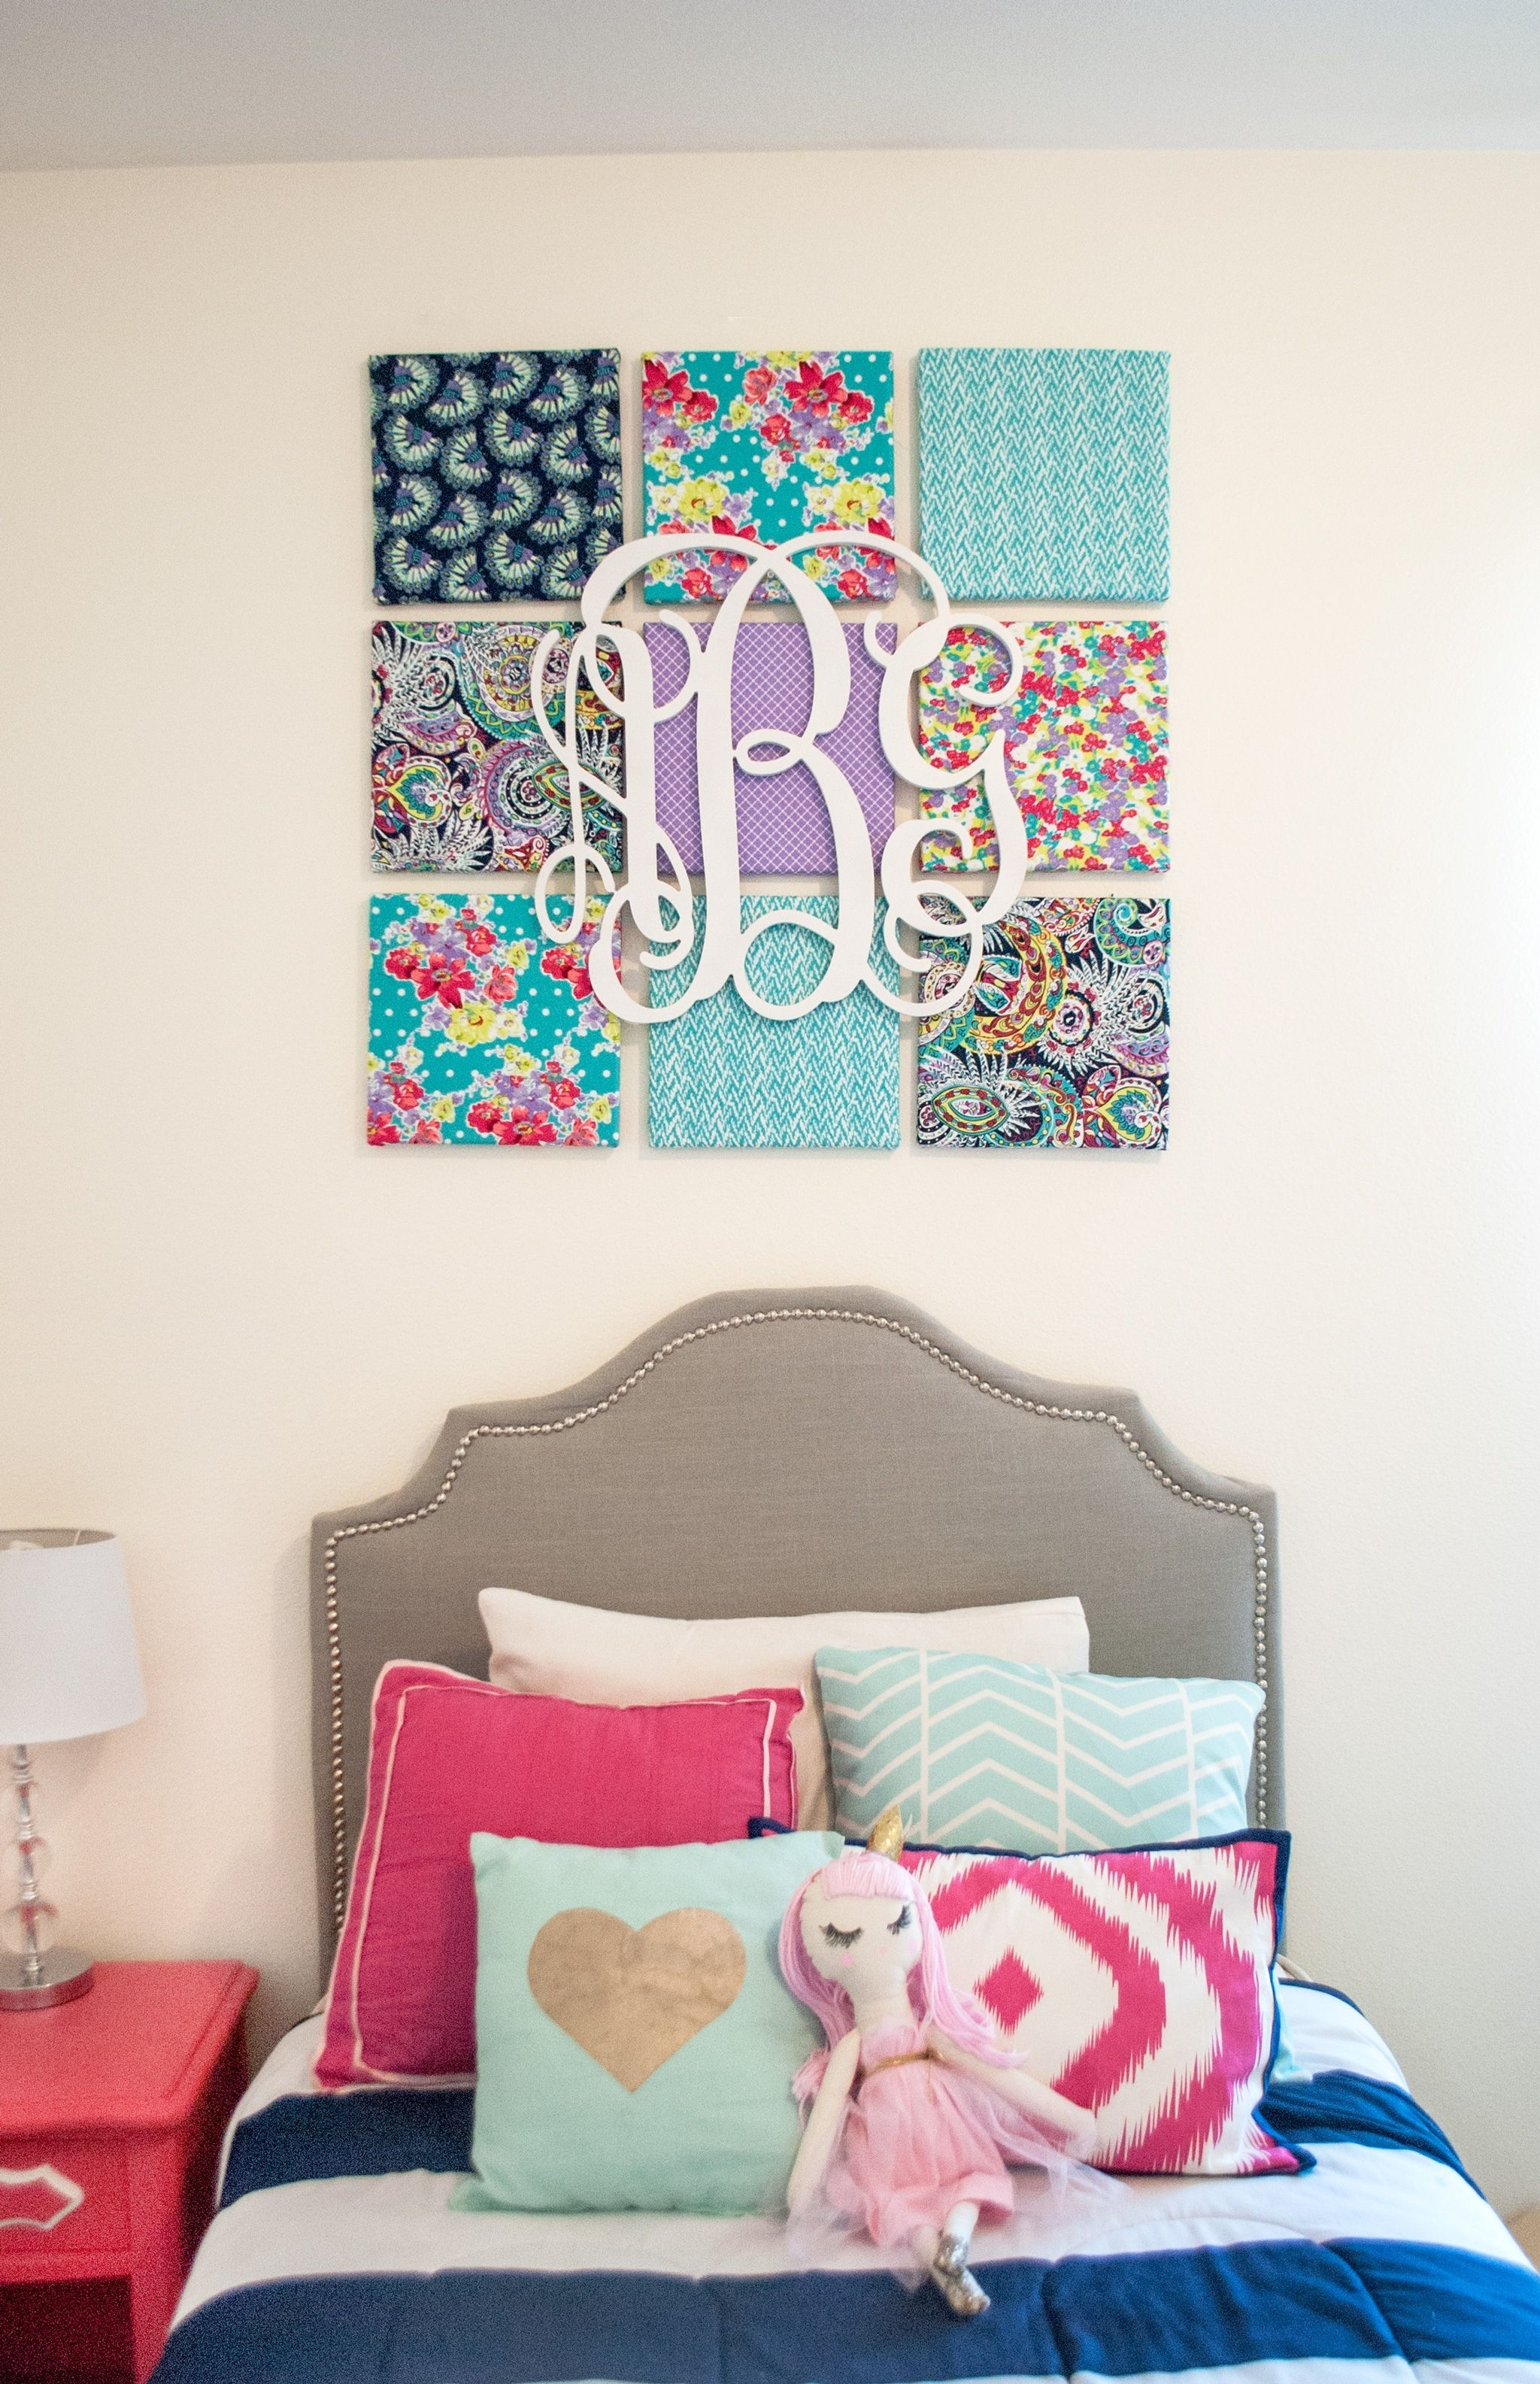 Diy Fabric Wall Art | Monogram Wall, Kids Rooms And Monograms With Regard To Most Up To Date Canvas Wall Art For Dorm Rooms (View 6 of 15)